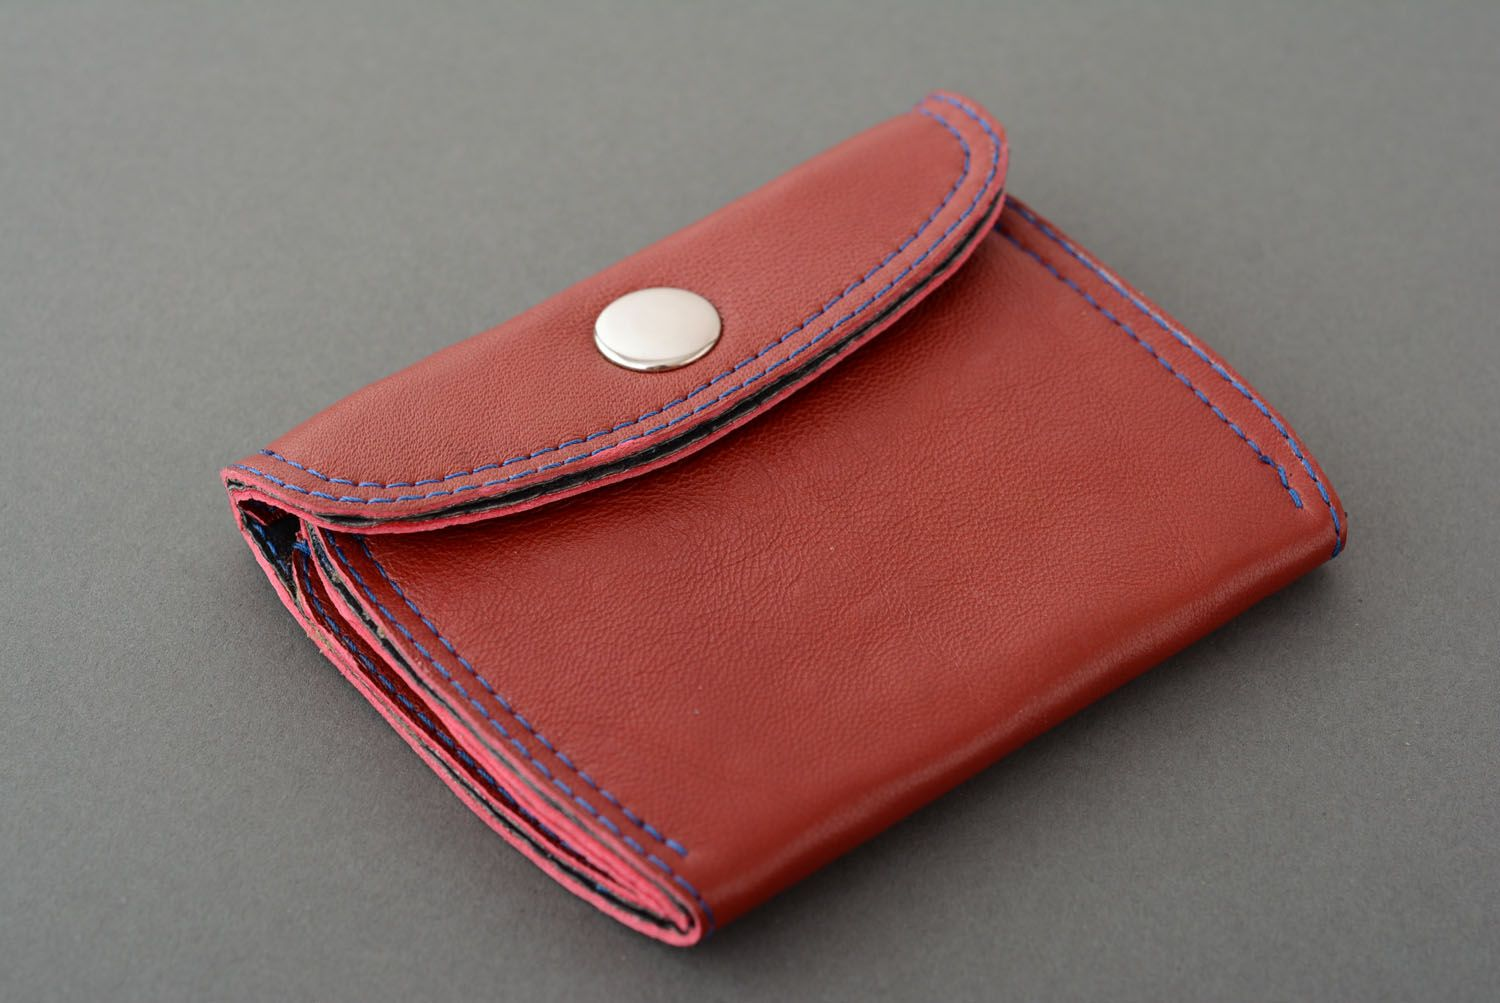 Leather wallet for coins photo 2